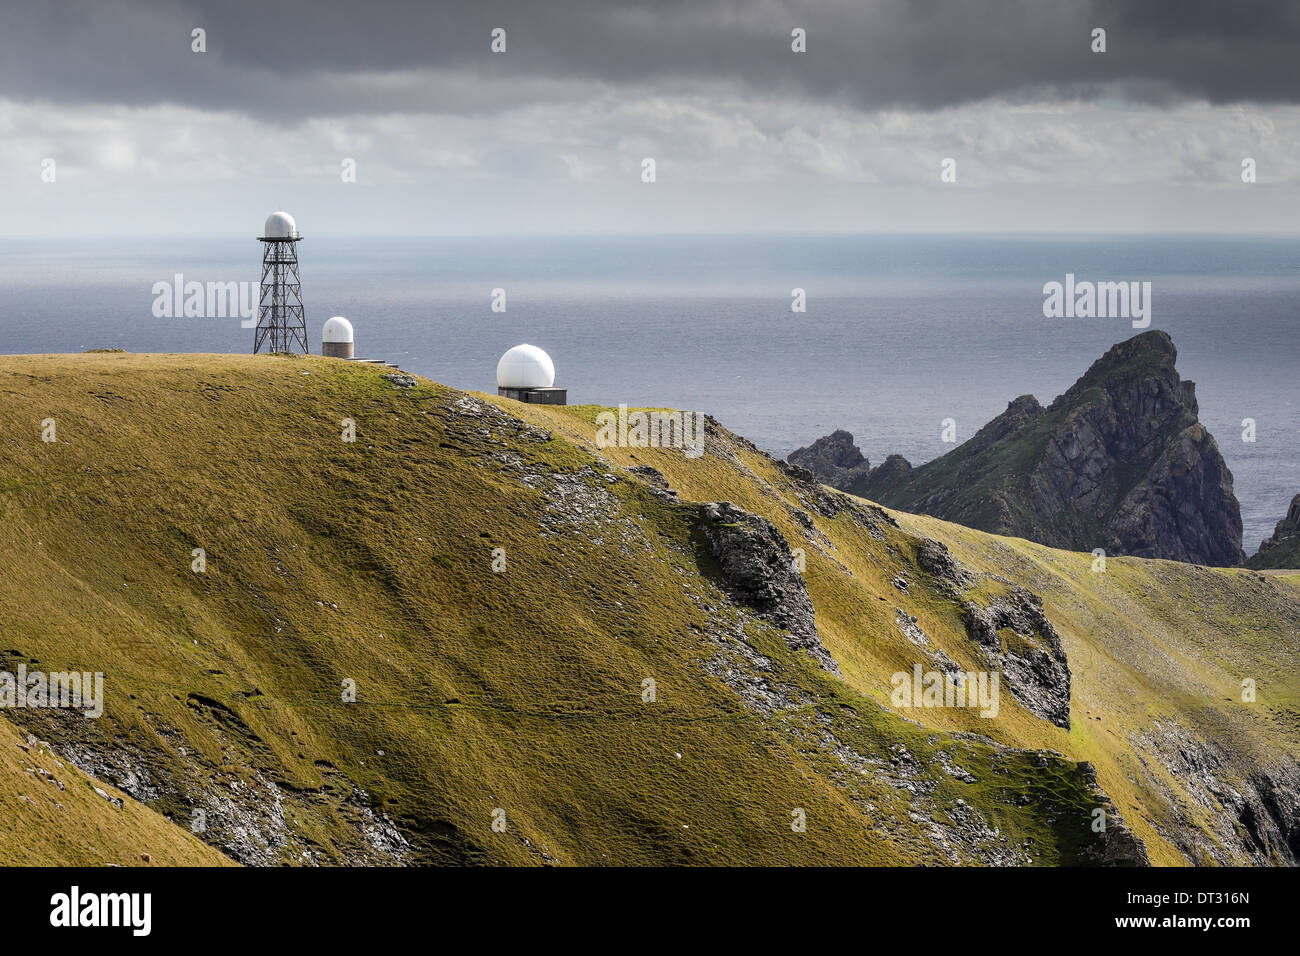 Radar towers on Hirta, St Kilda with the cliffs on Dun visible in the background - Stock Image